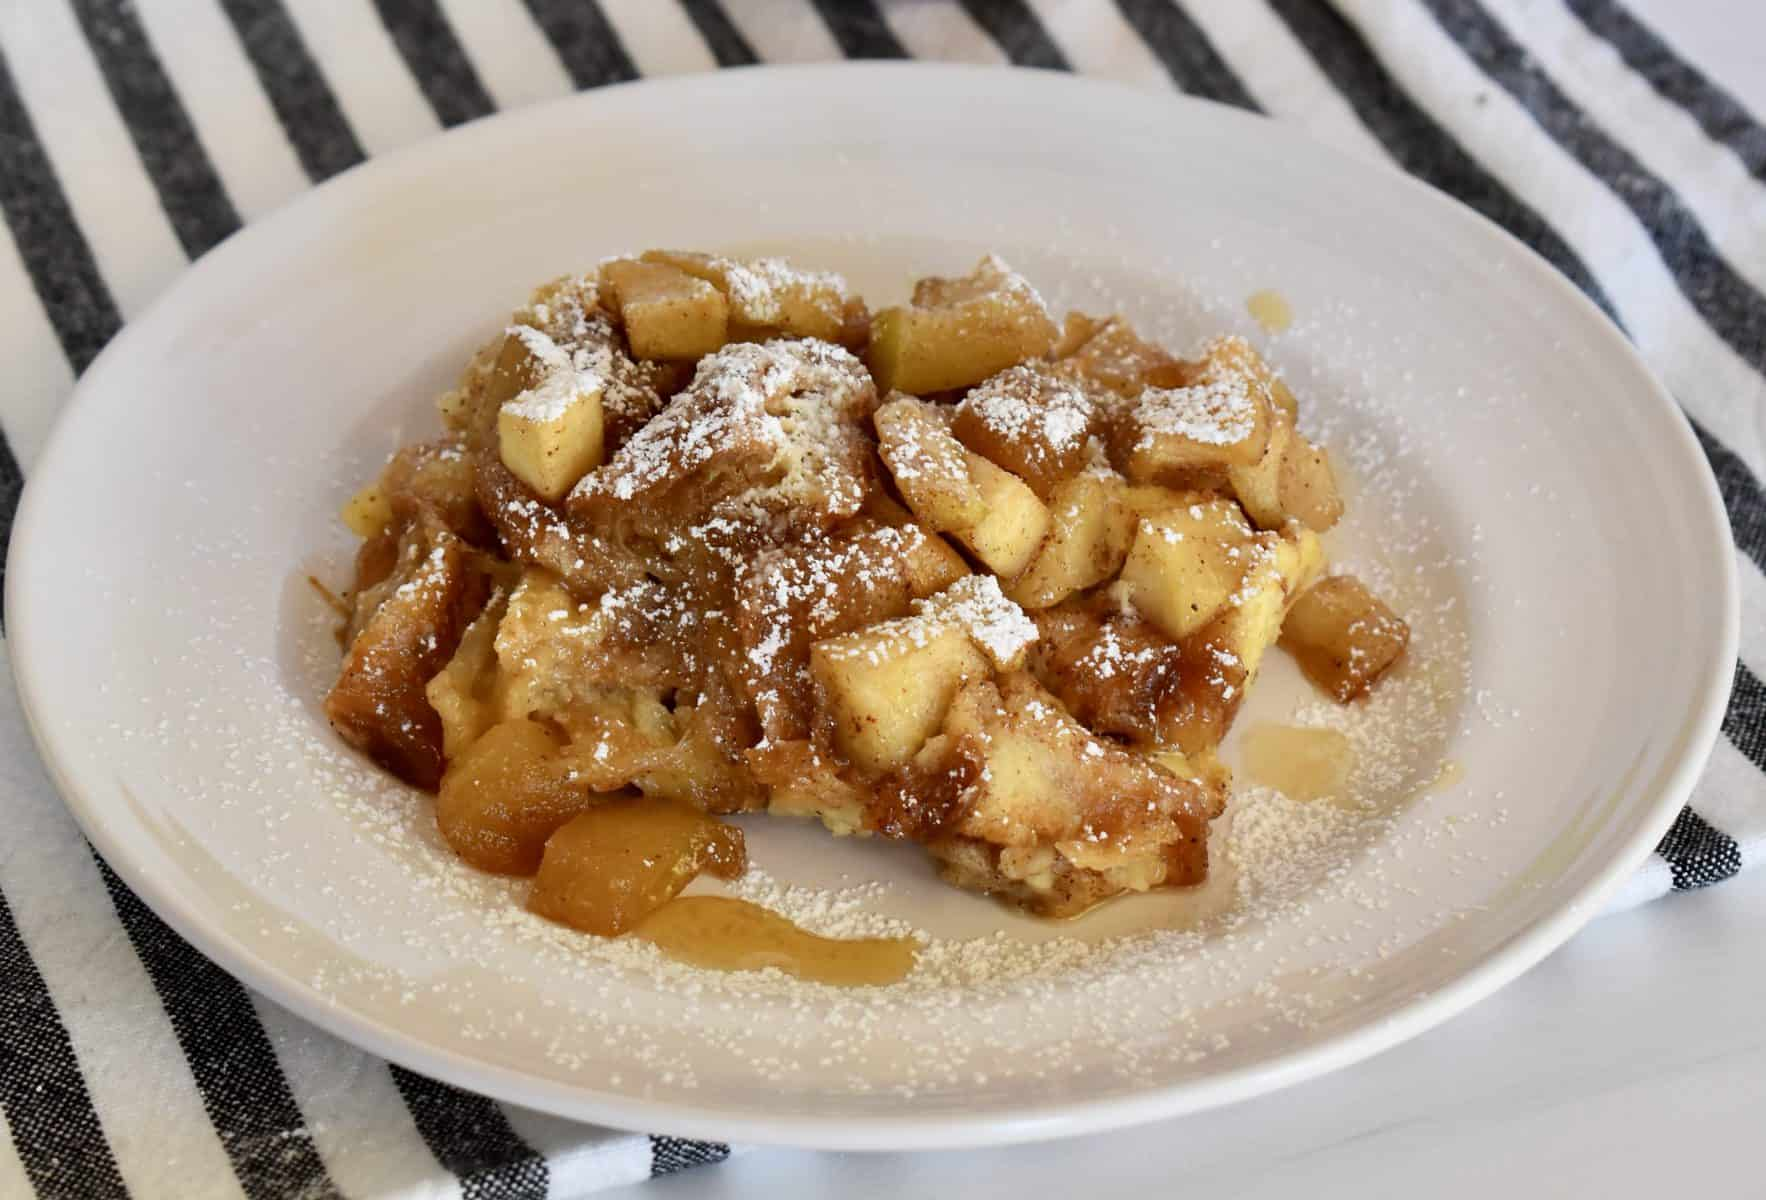 White plate with croissant baked French toast and cinnamon apples with powdered sugar sprinkled overtop.